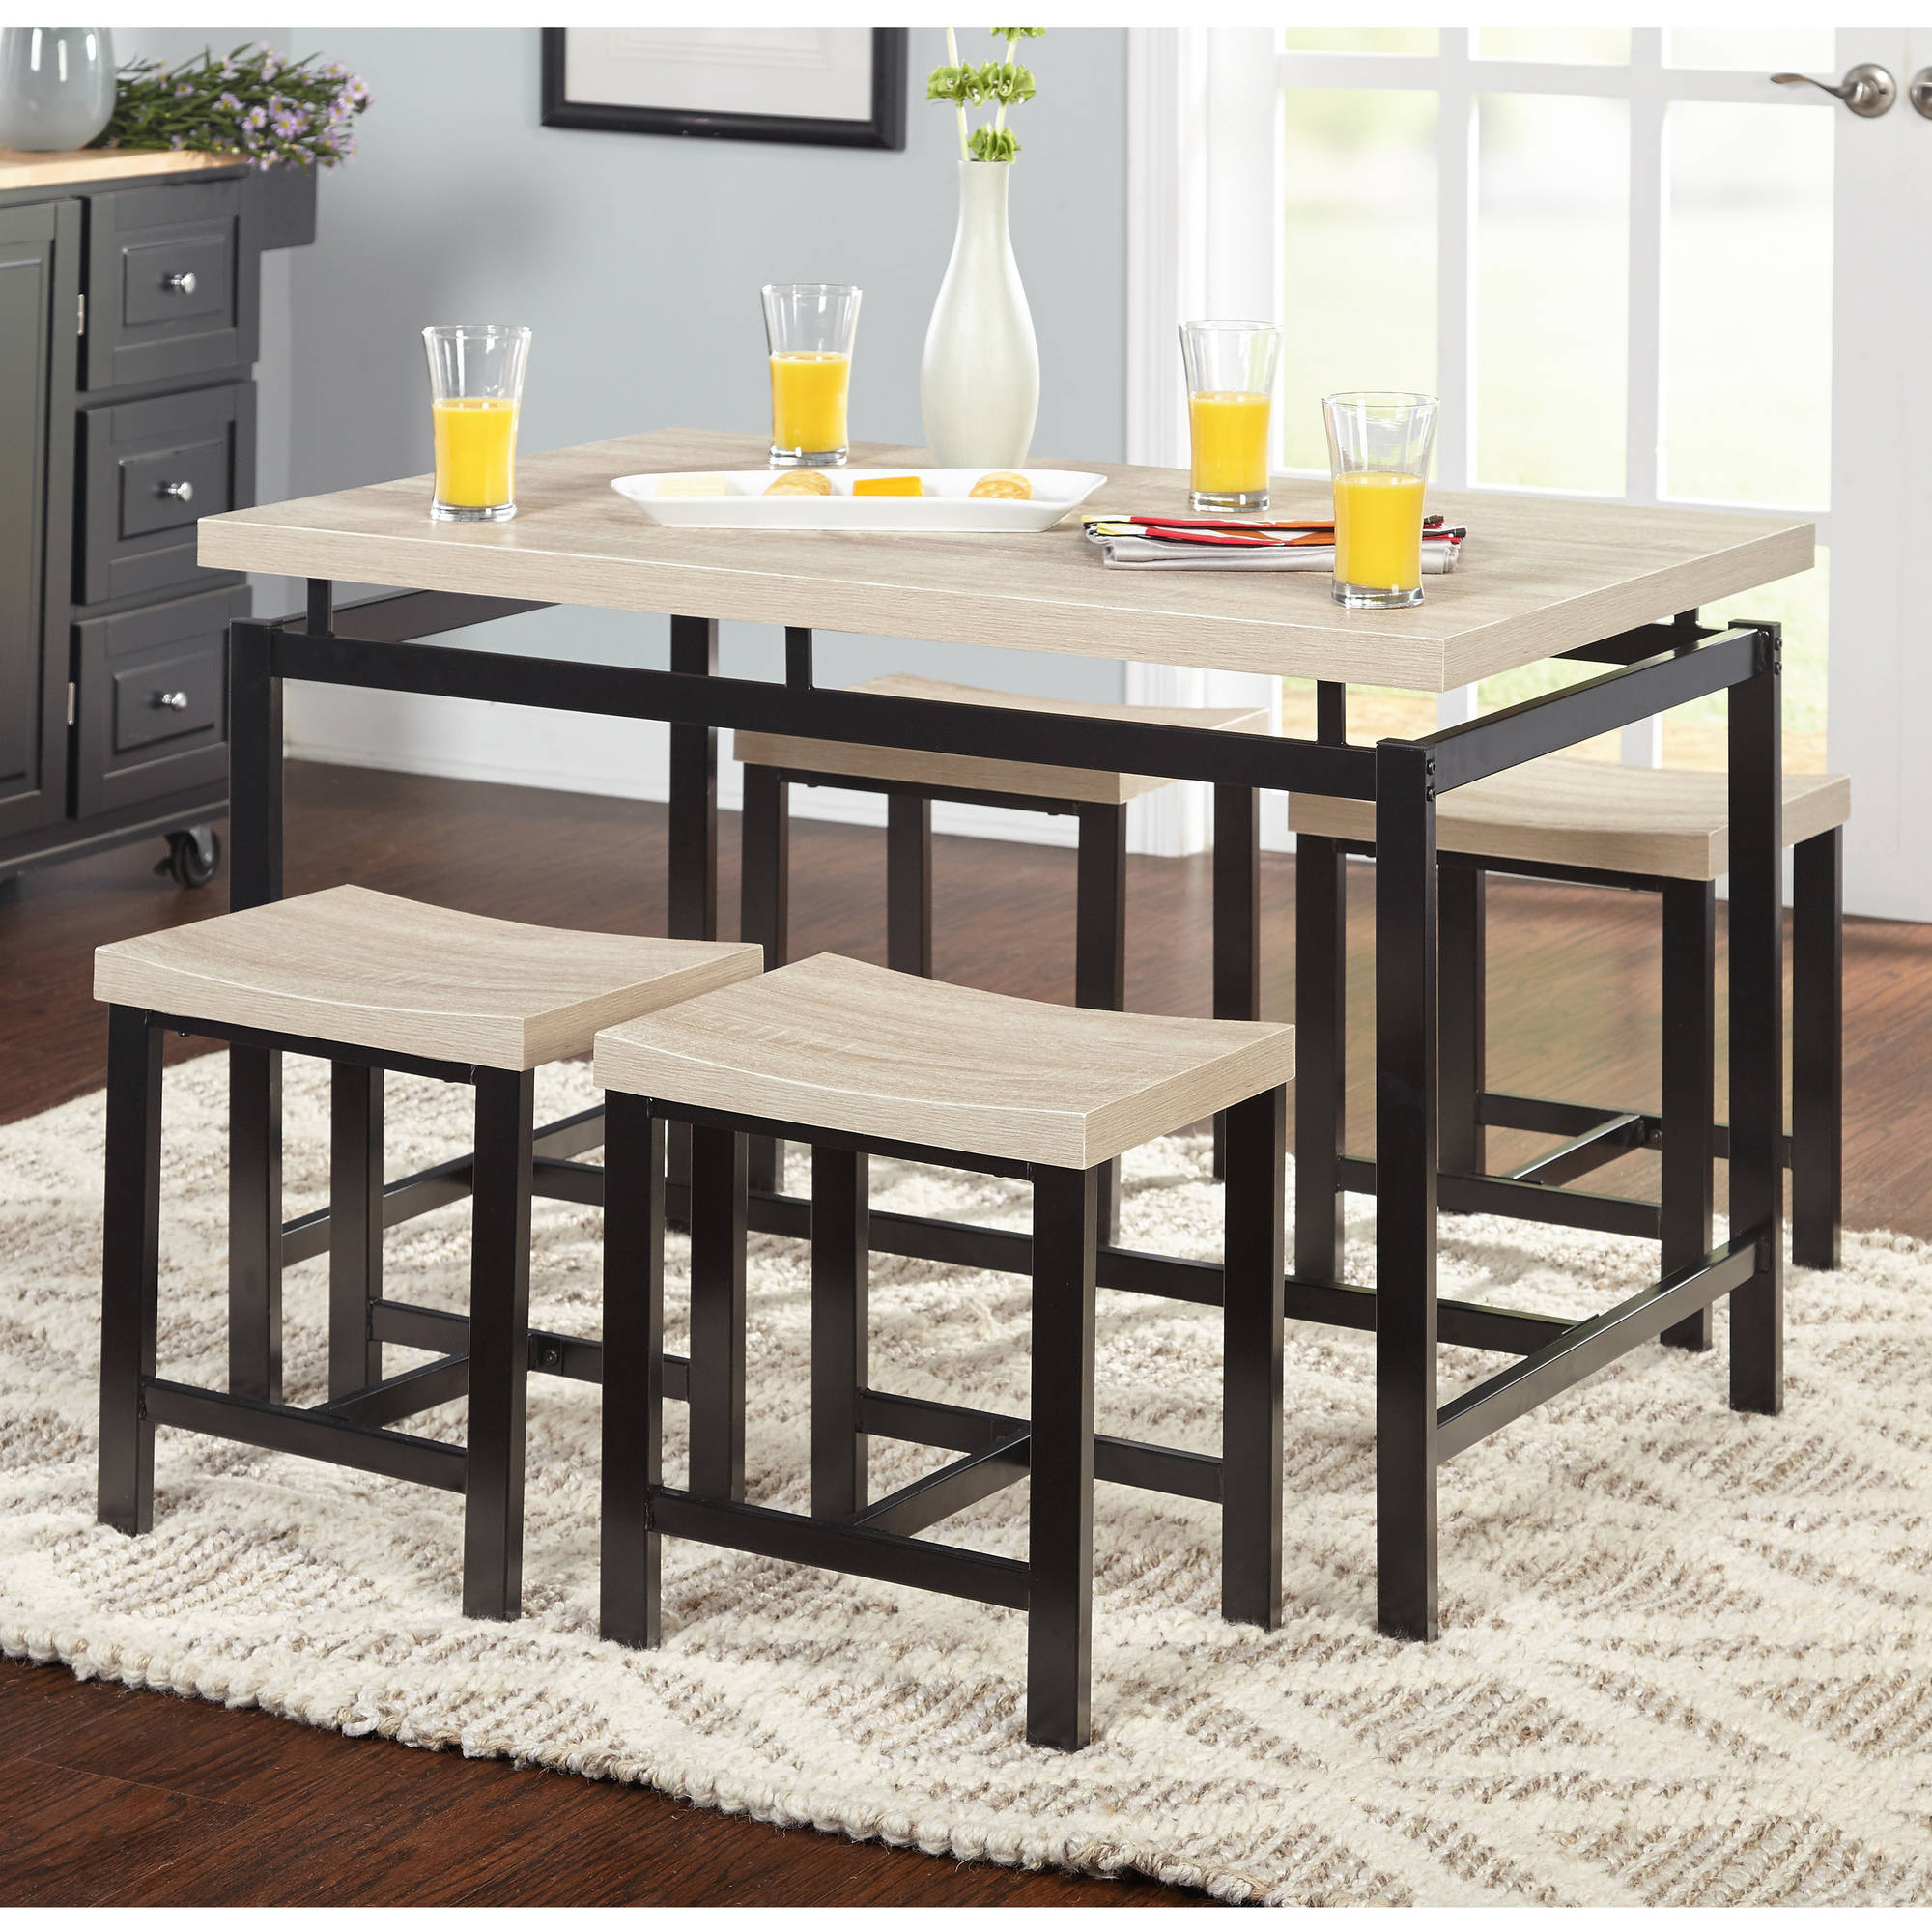 5-Piece Delano Dining Set, Natural